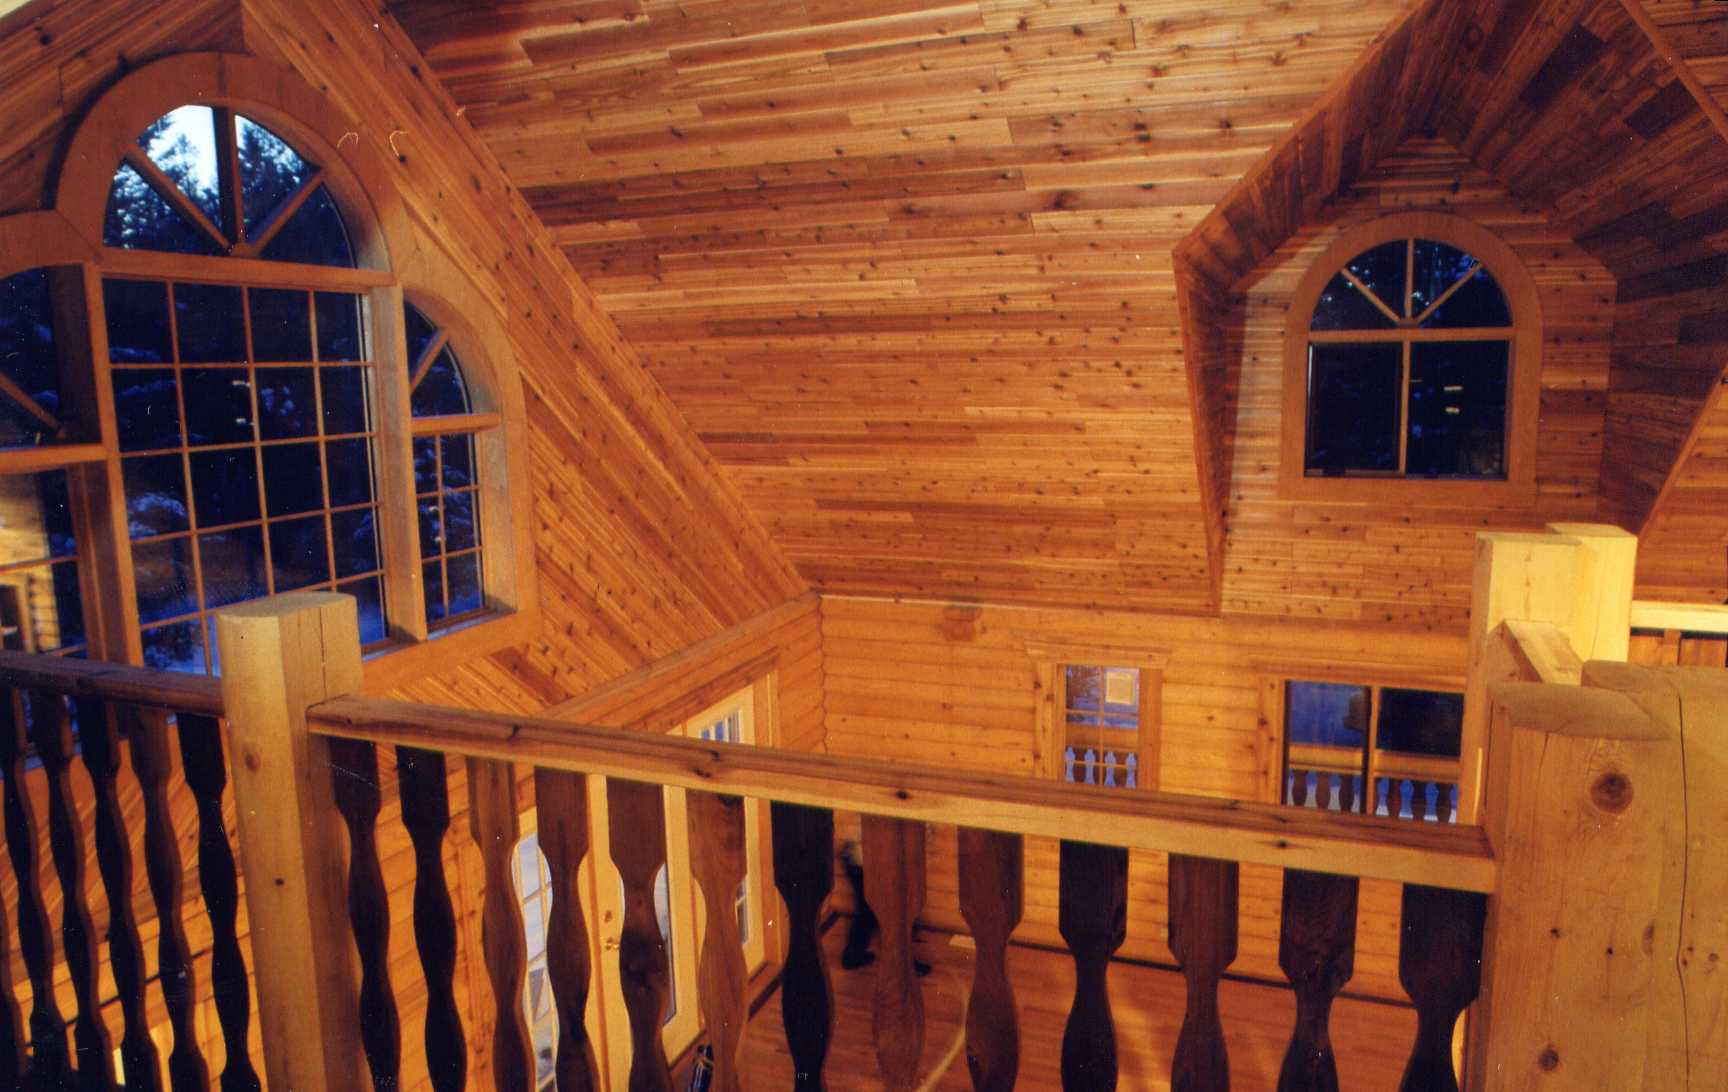 Interior view of a cub dormer from the open loft